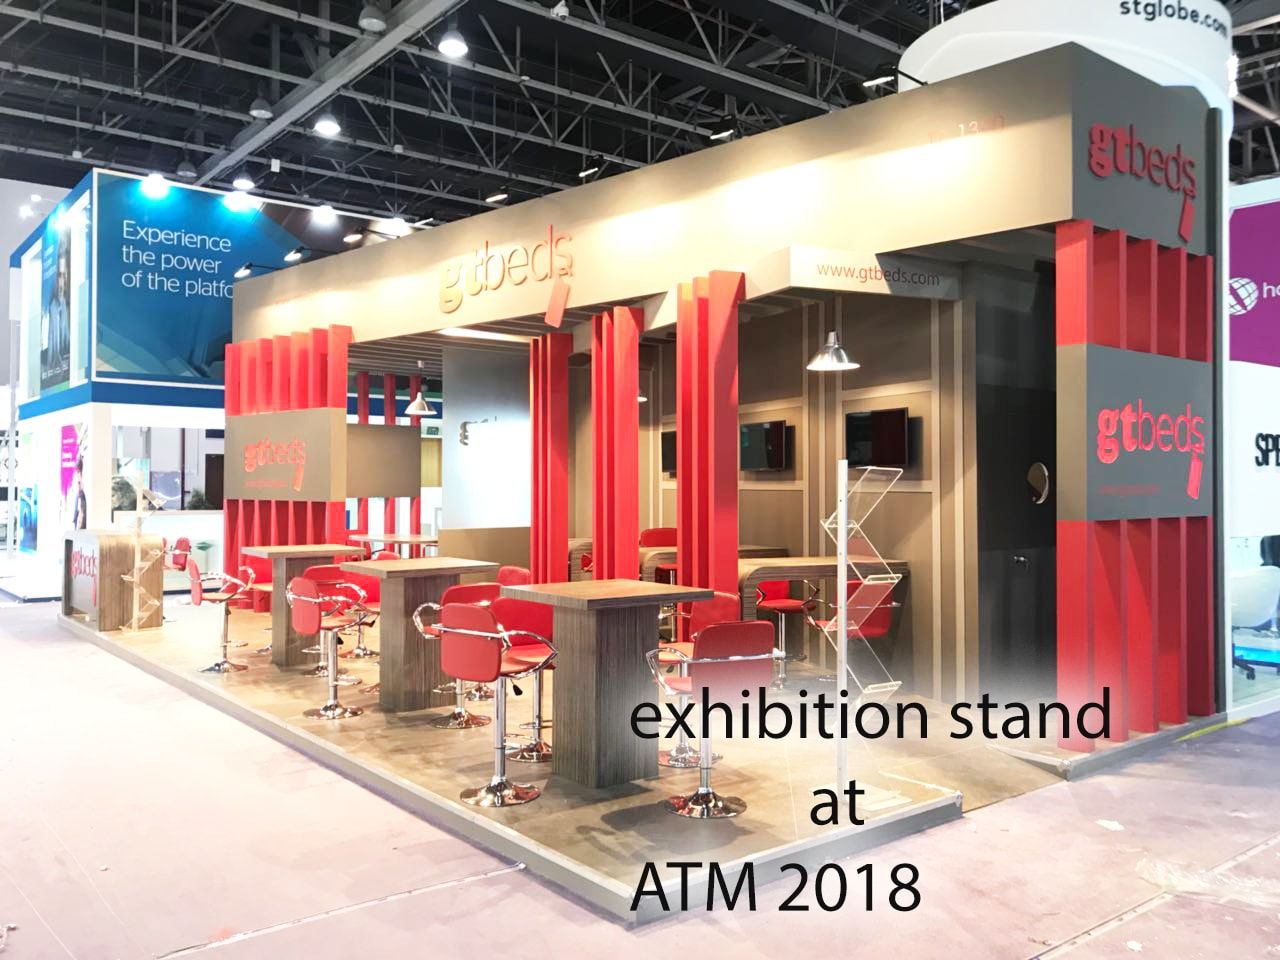 gtbeds exhibition stand for ATM Dubai